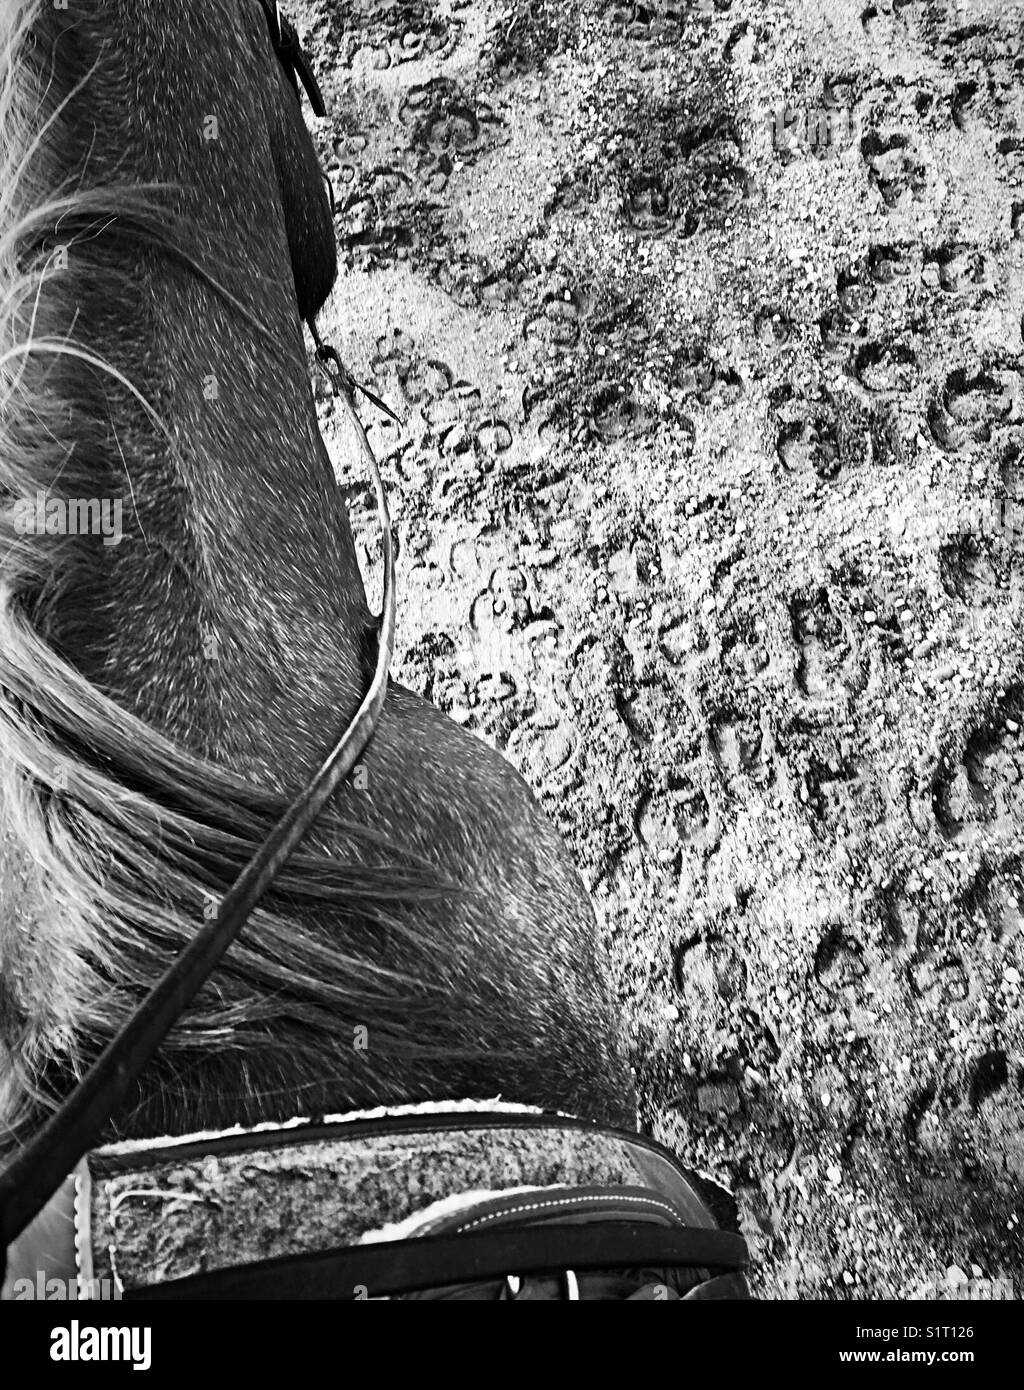 Black And White Horse Saddle And Cow Hoof Prints Stock Photo Alamy